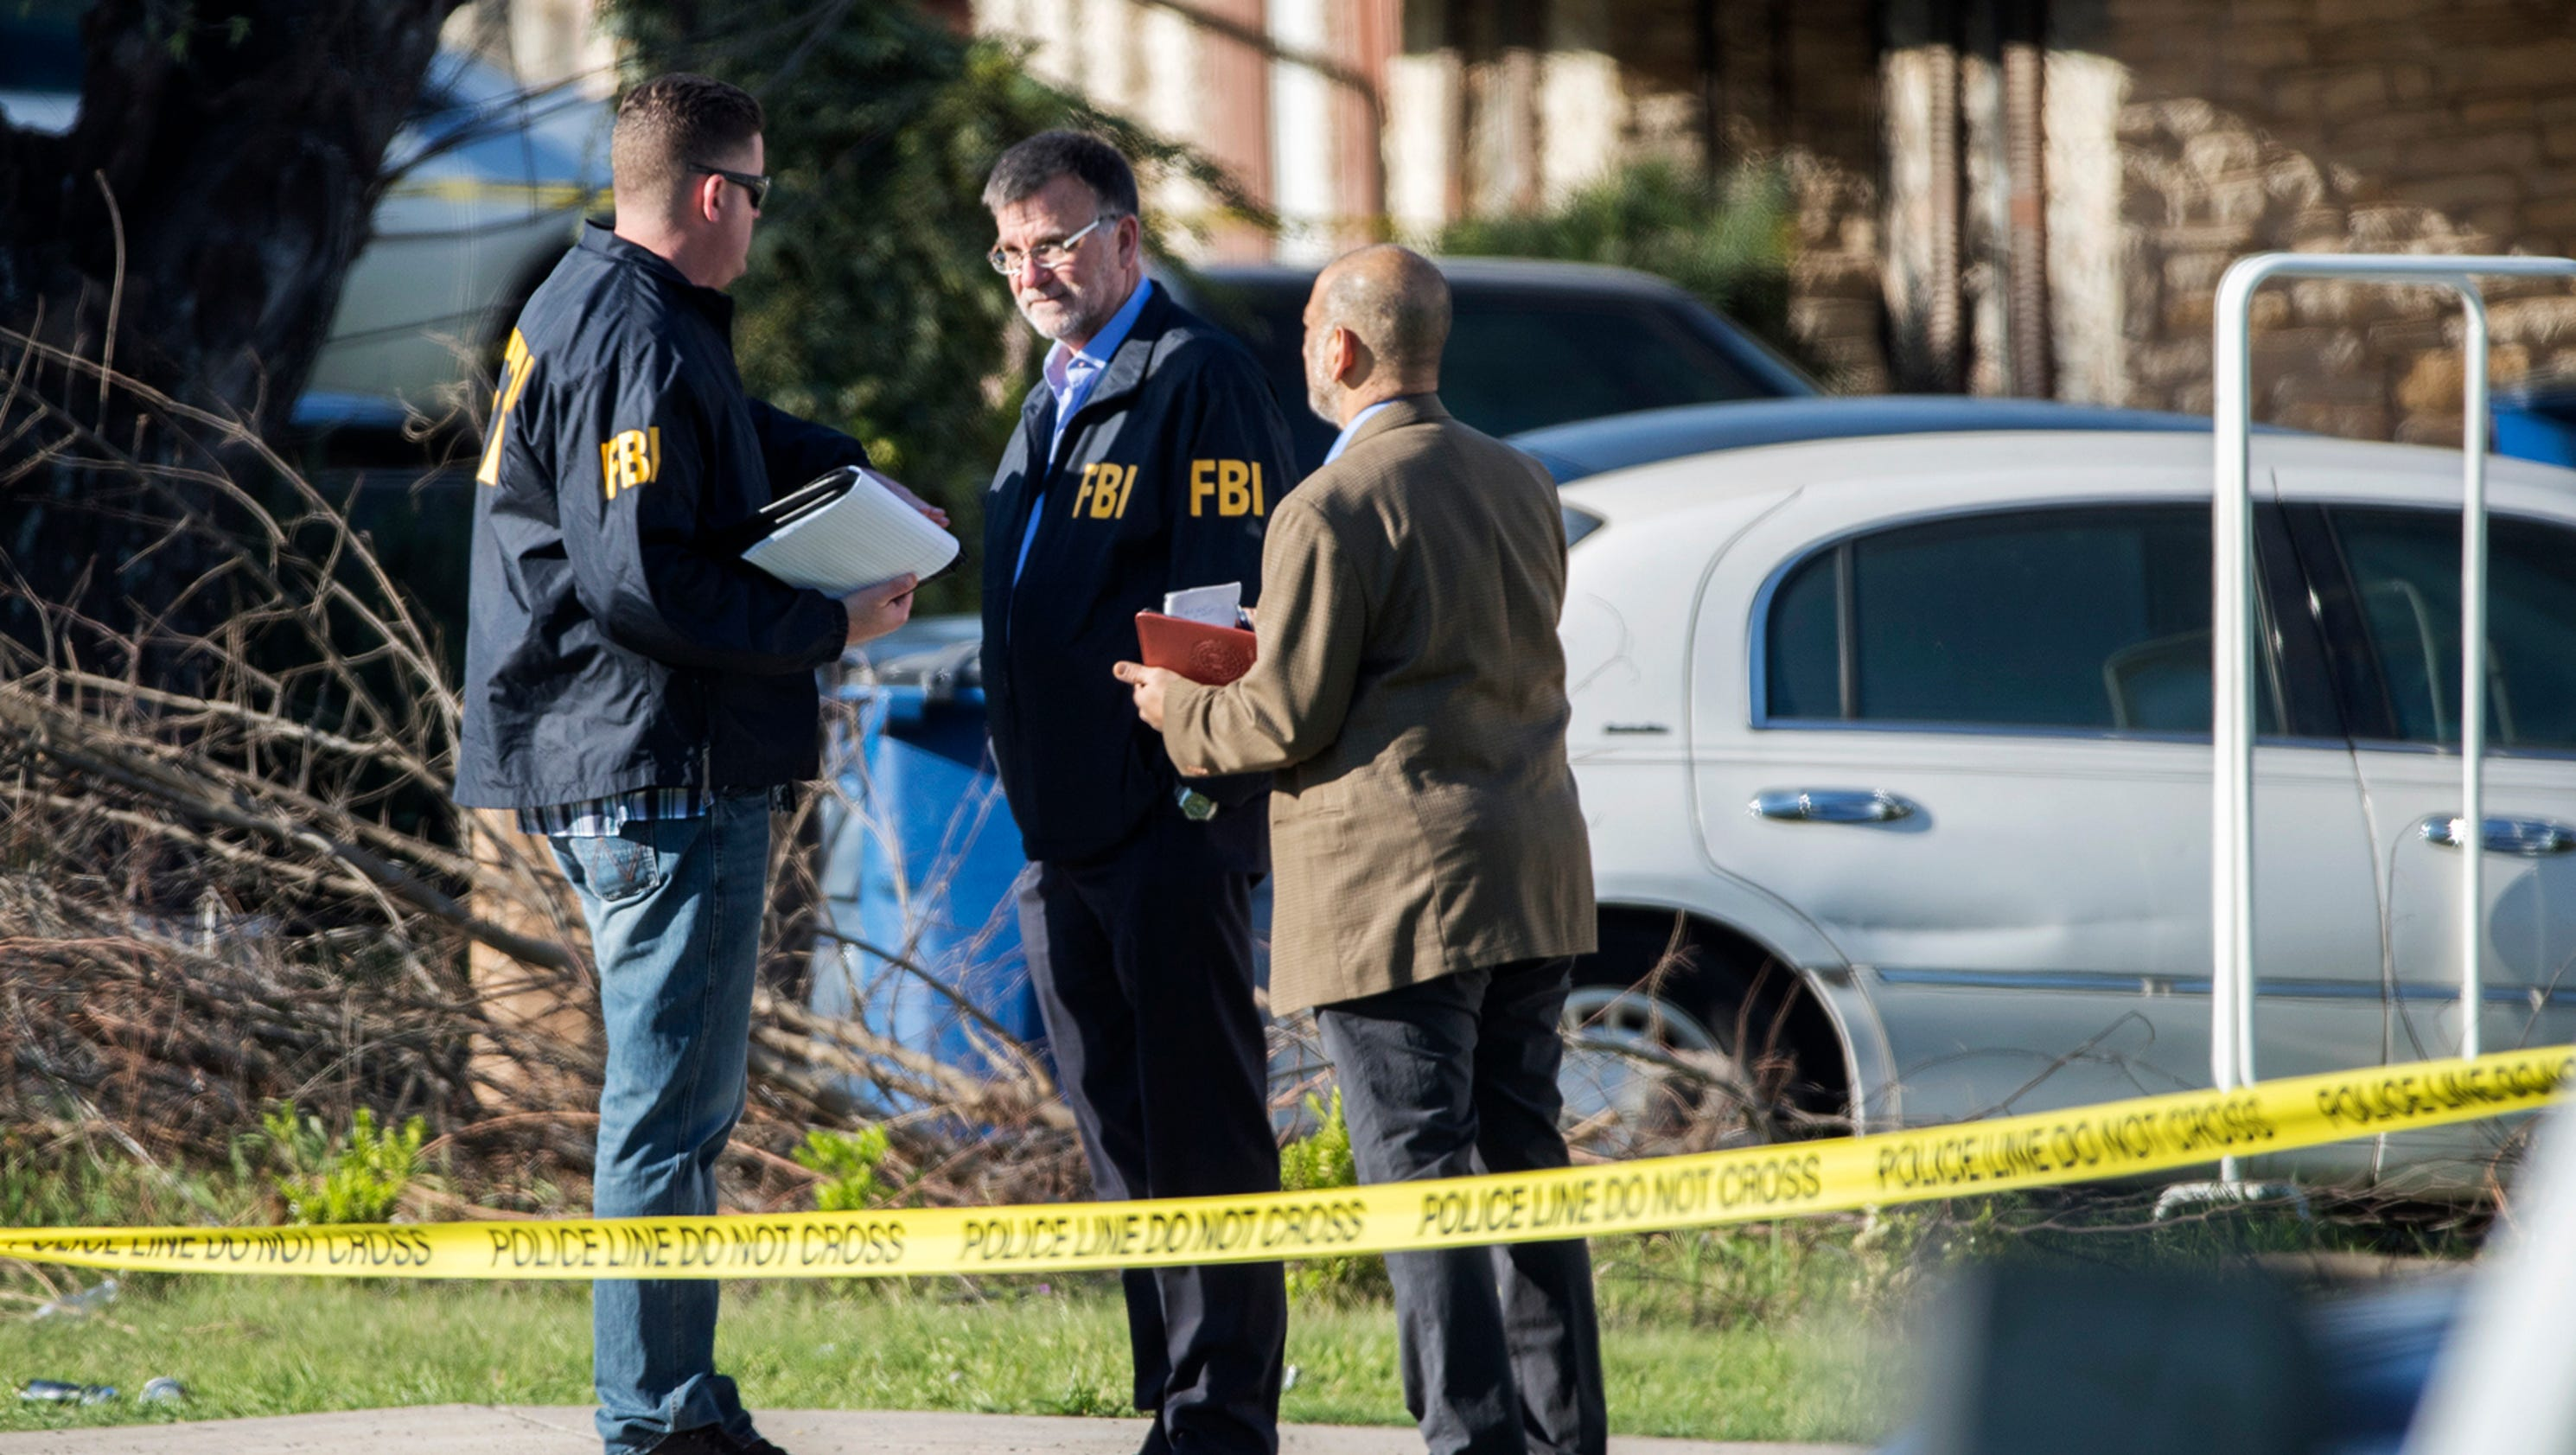 Austin Police plead with serial bomber: We hope you are watching and will call us